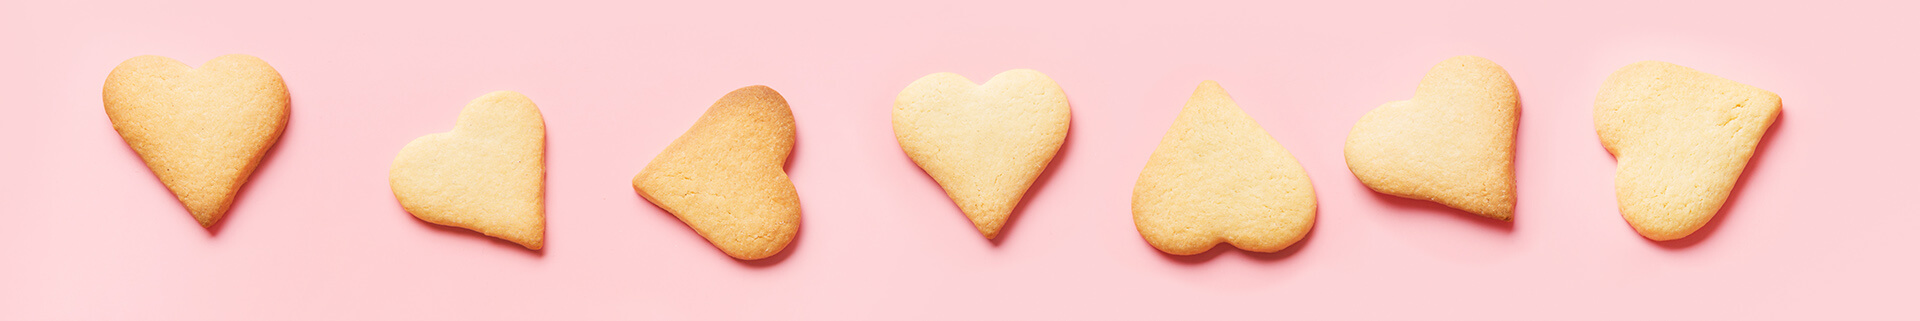 Heart-shaped sugar cookies on pink background